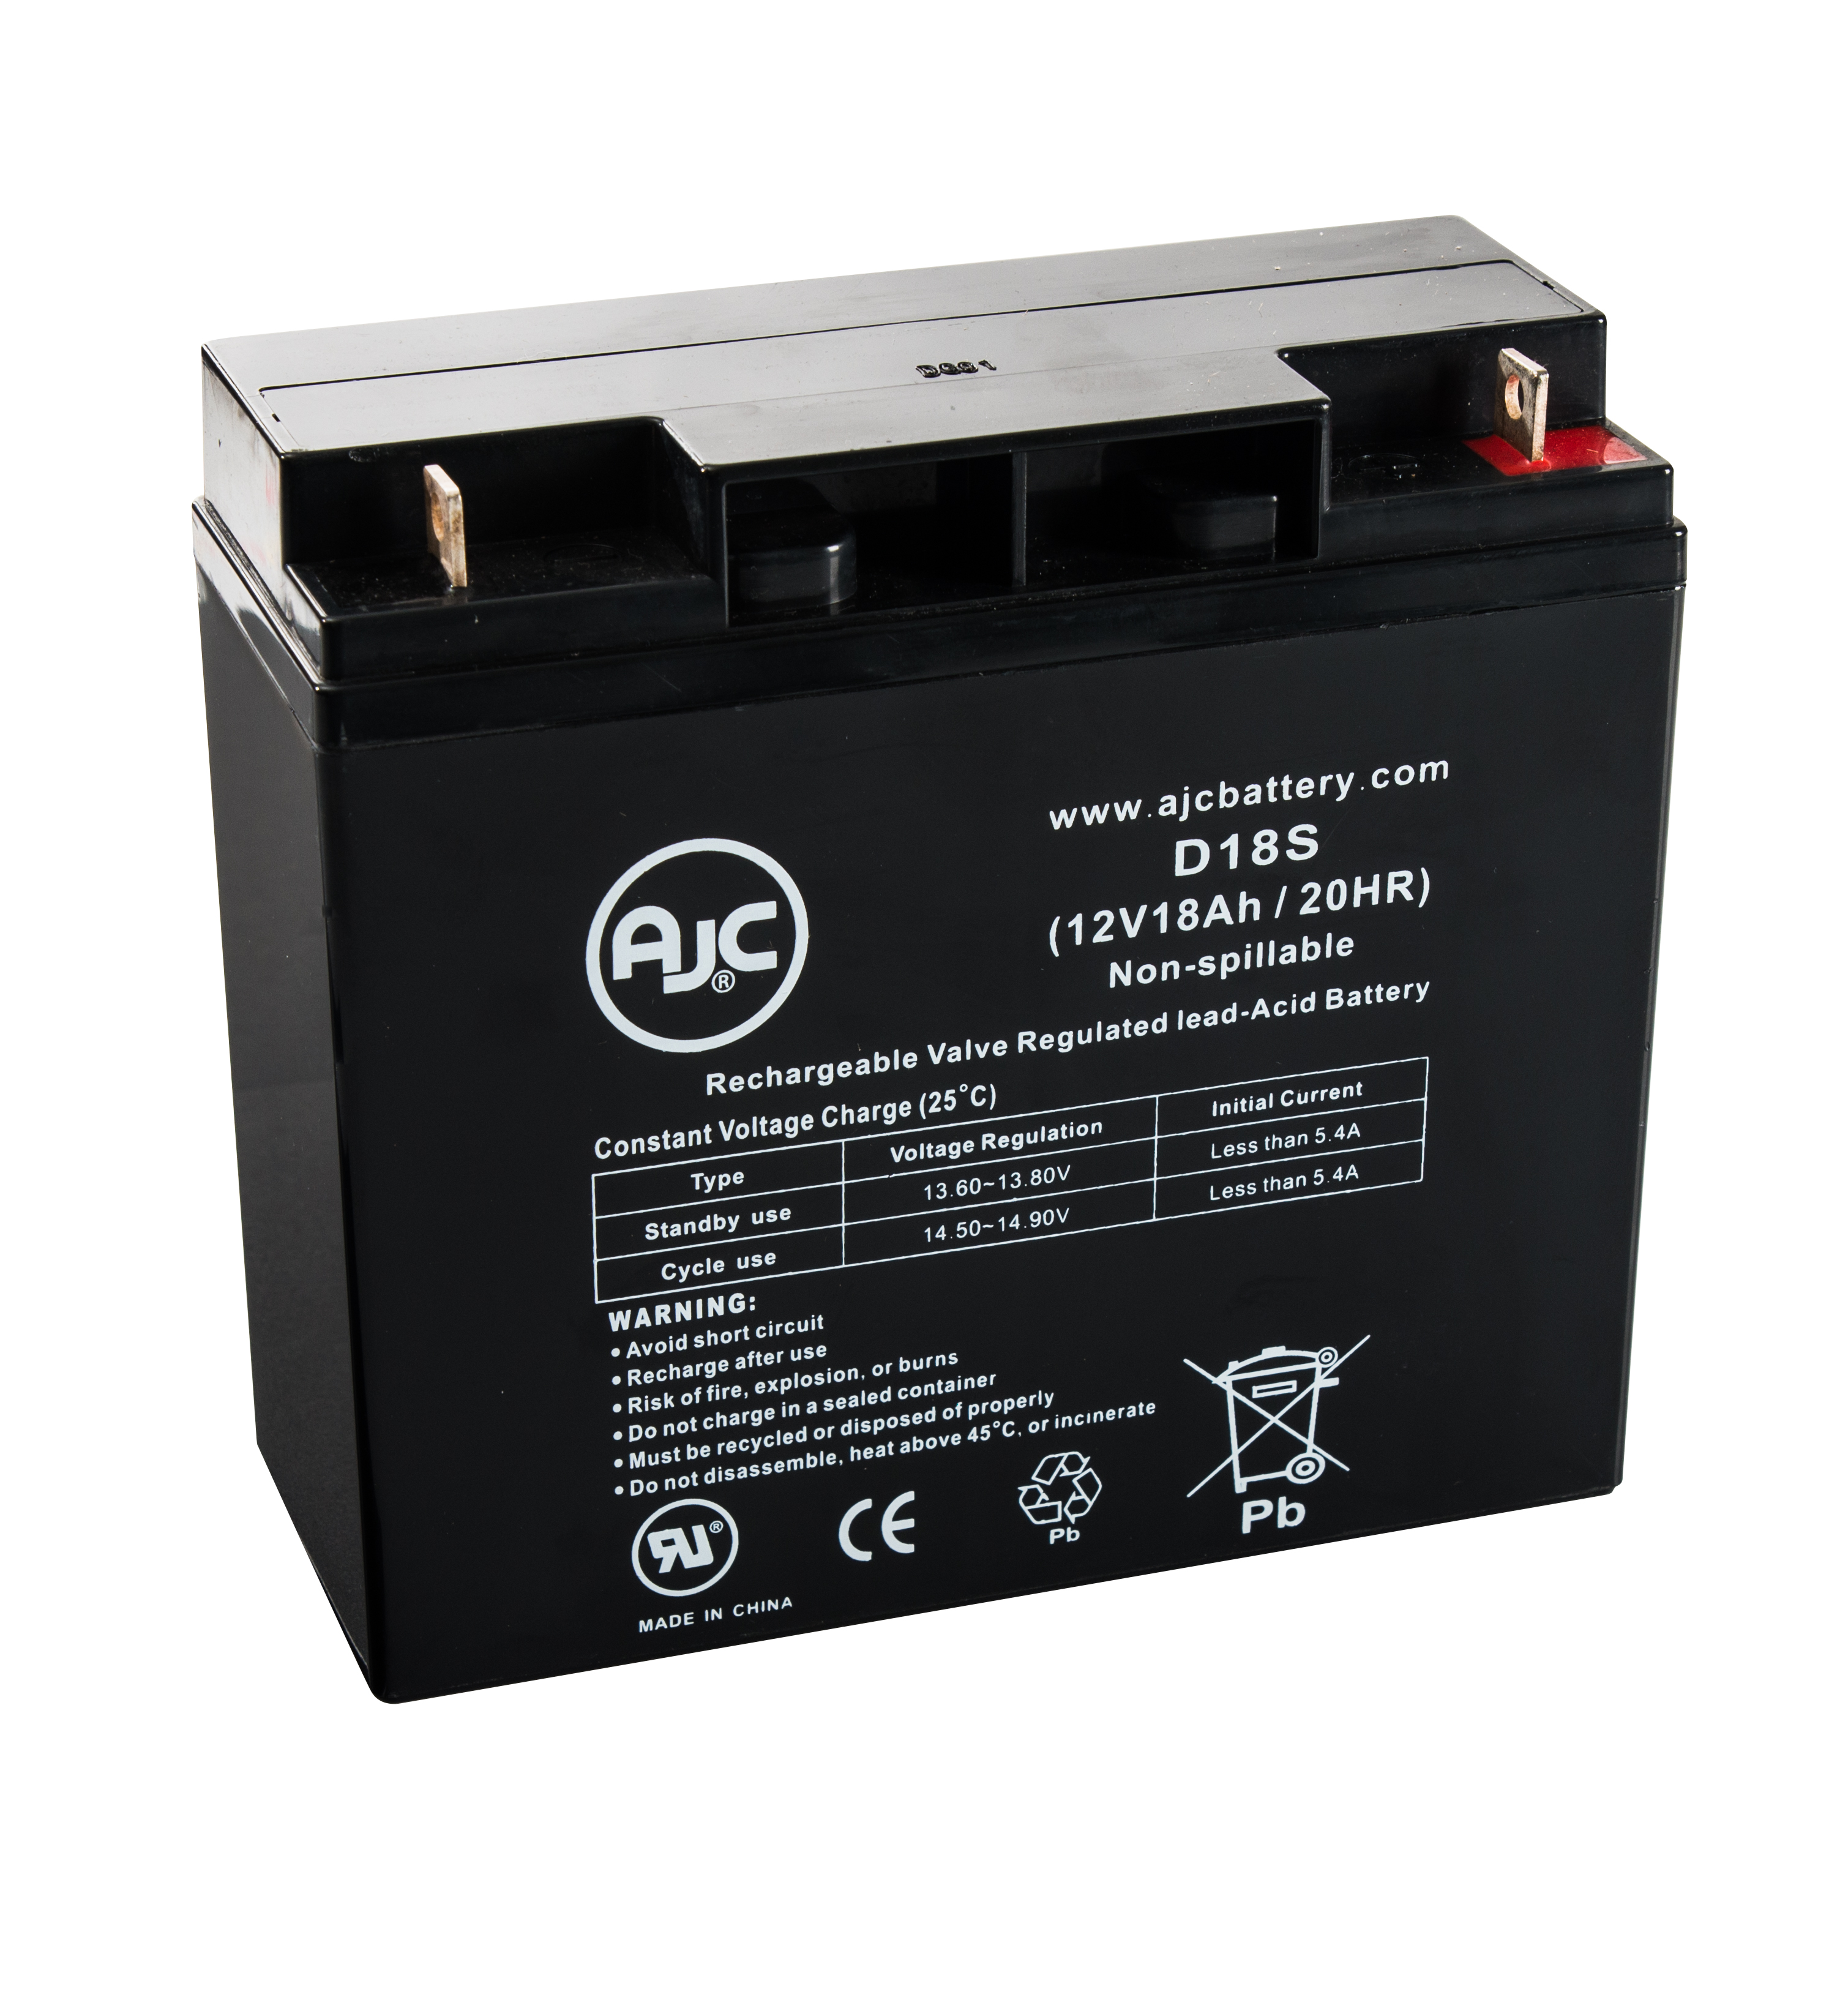 AJC JC12170 12V 18Ah Wheelchair Battery - This is an AJC Brand® Replacement